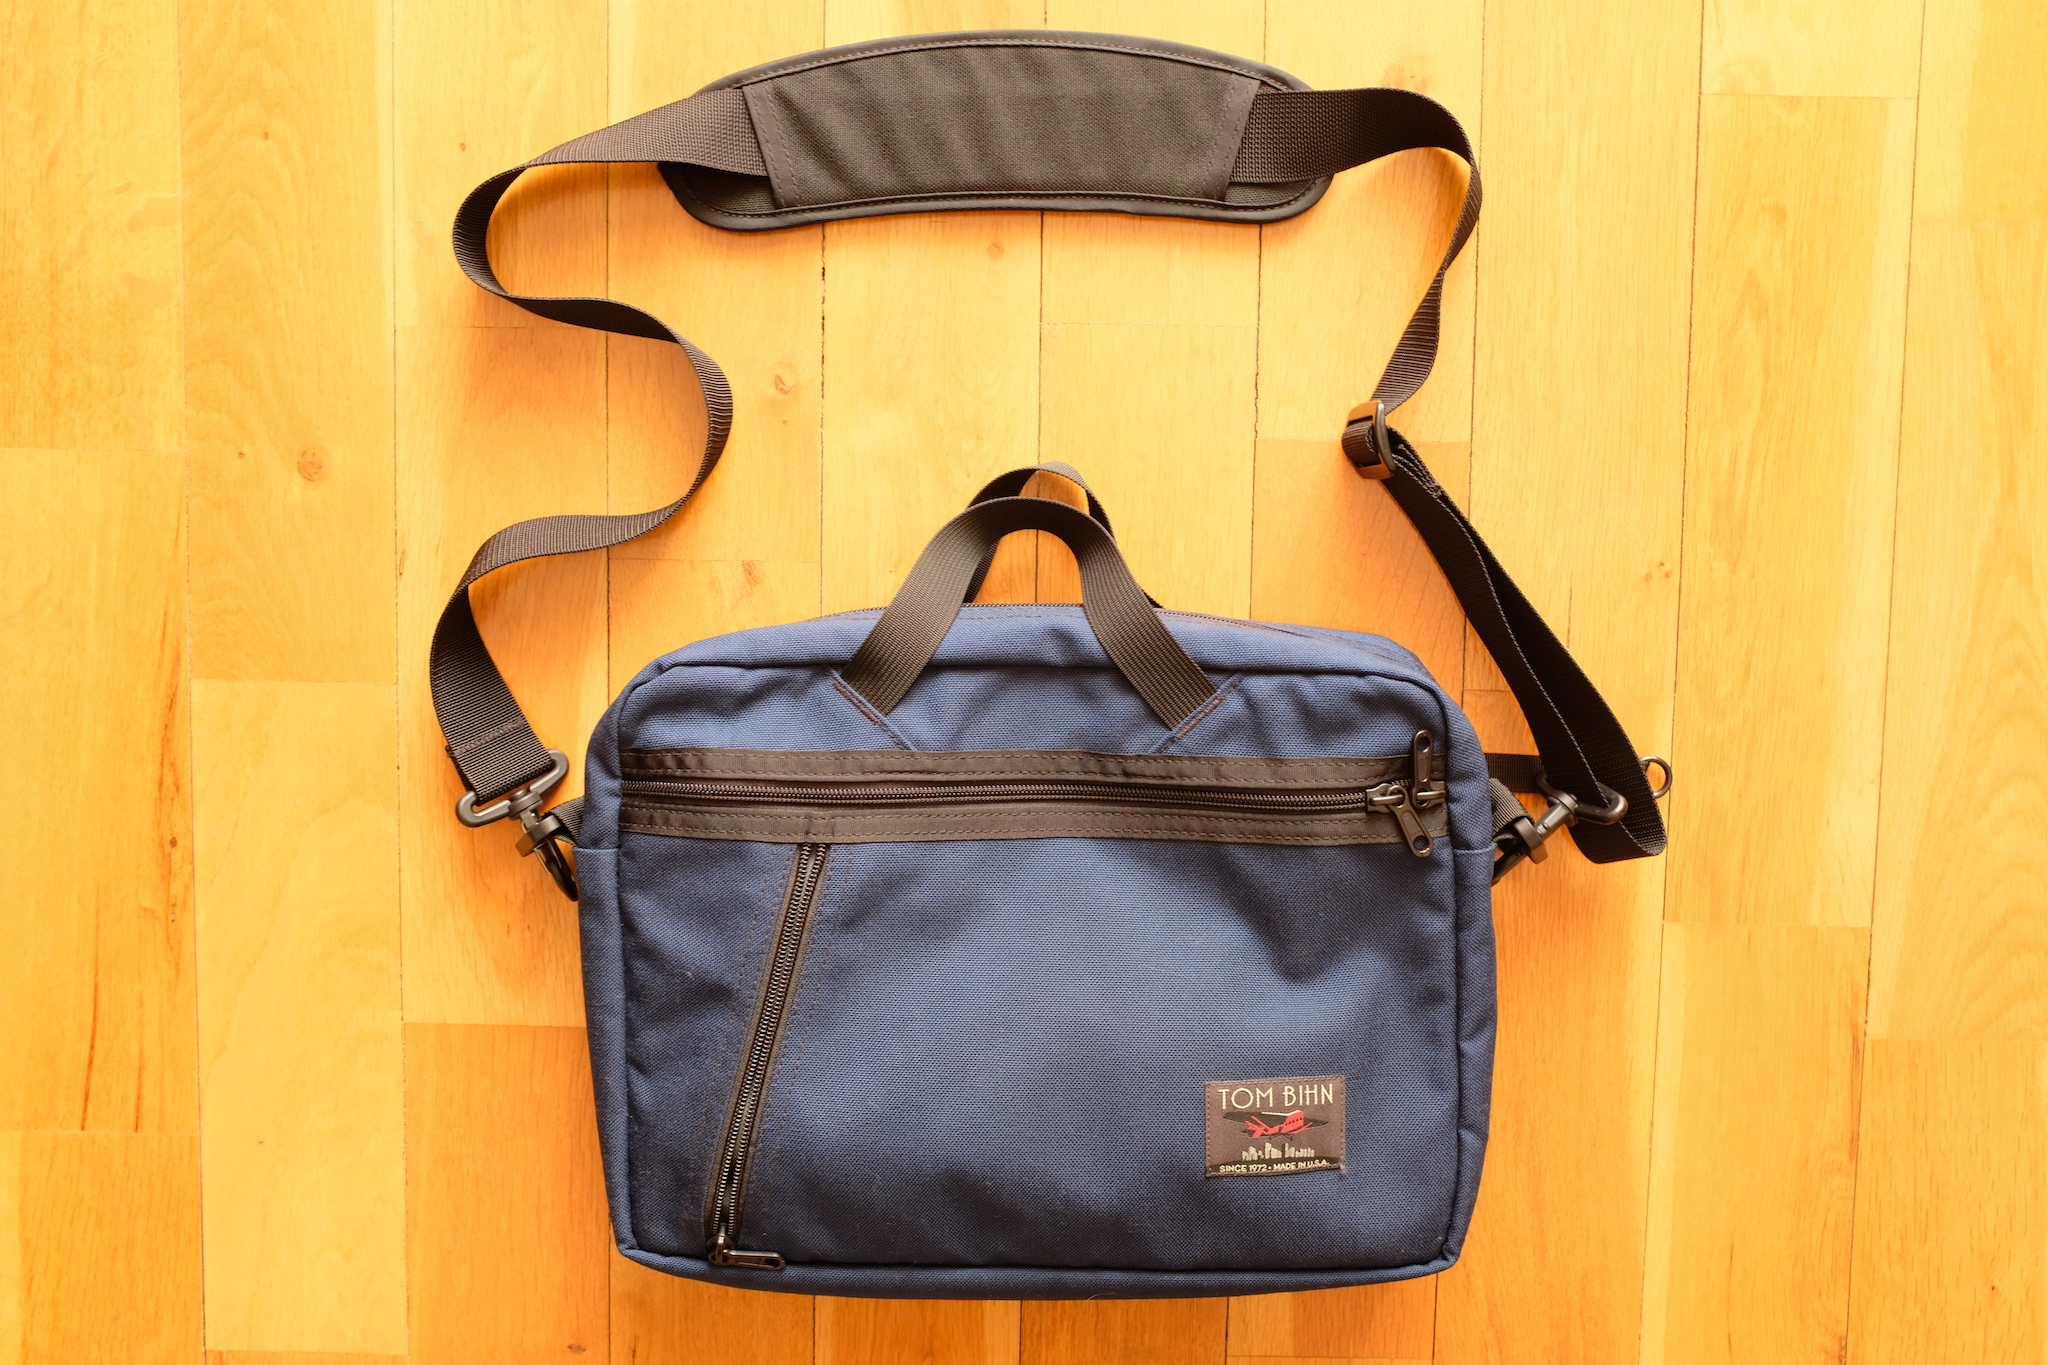 The DLBC with the Standard Shoulder Strap